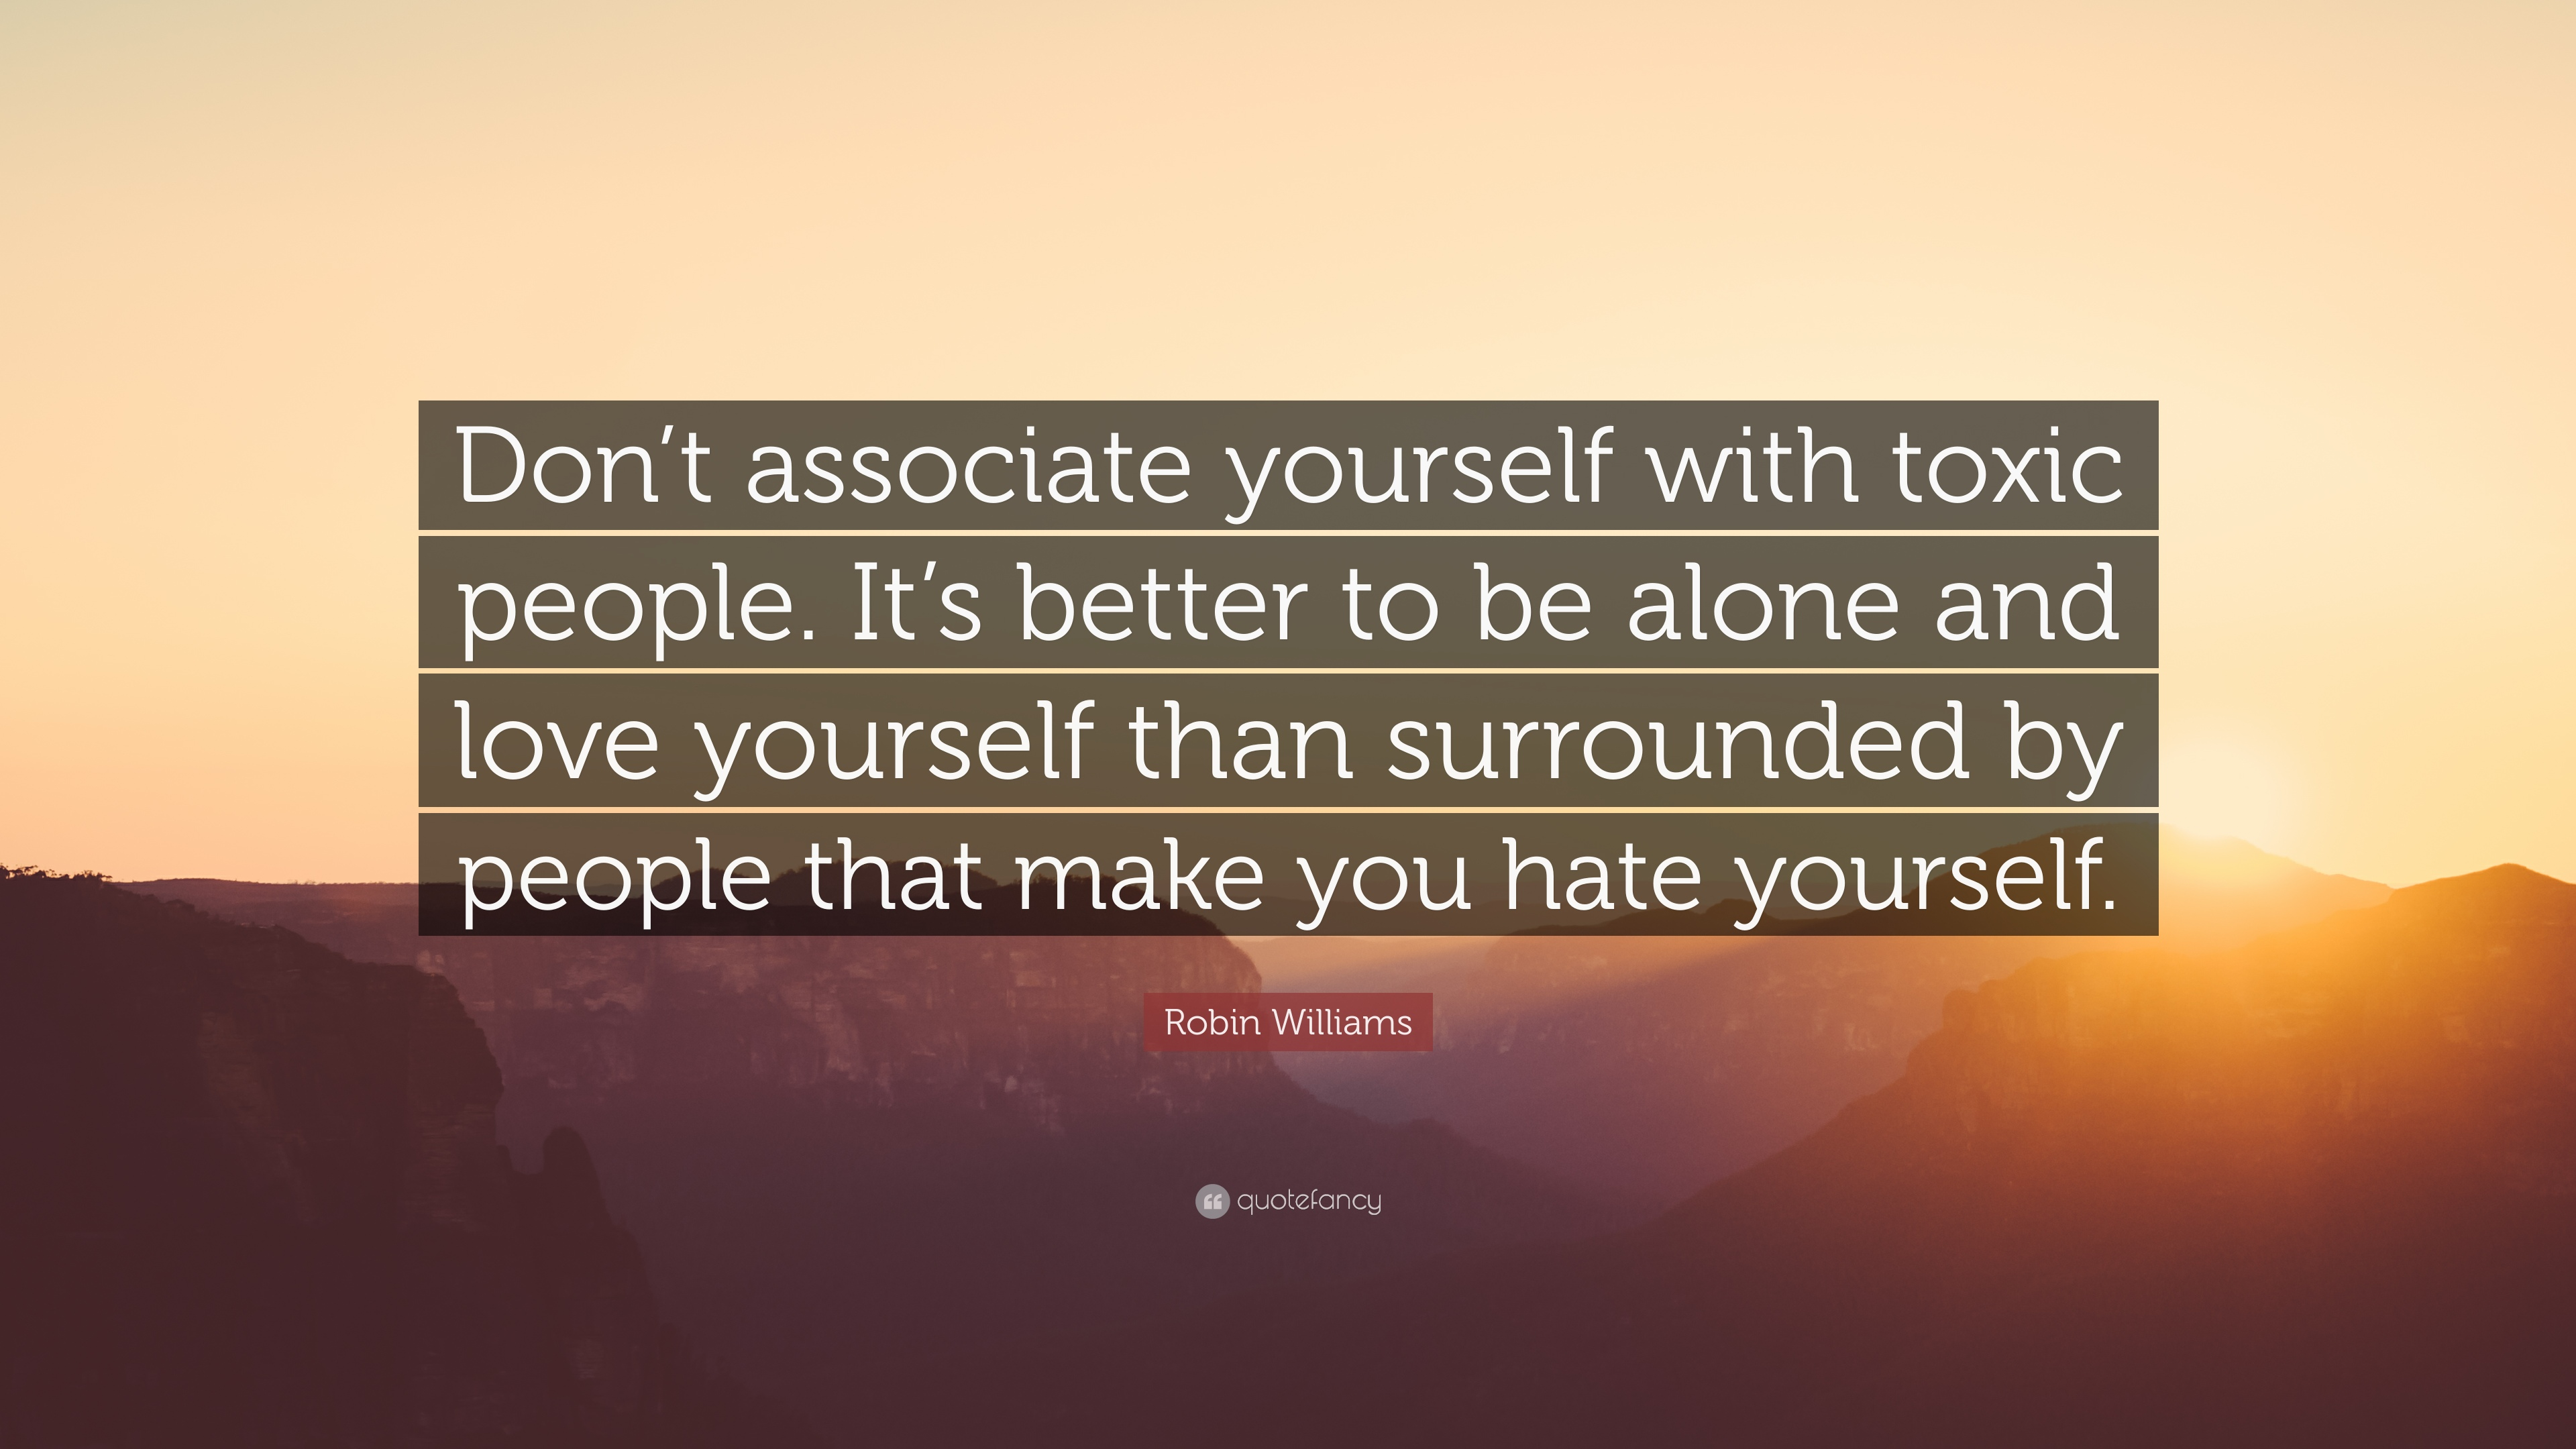 Hate Quotes (40 wallpapers) - Quotefancy